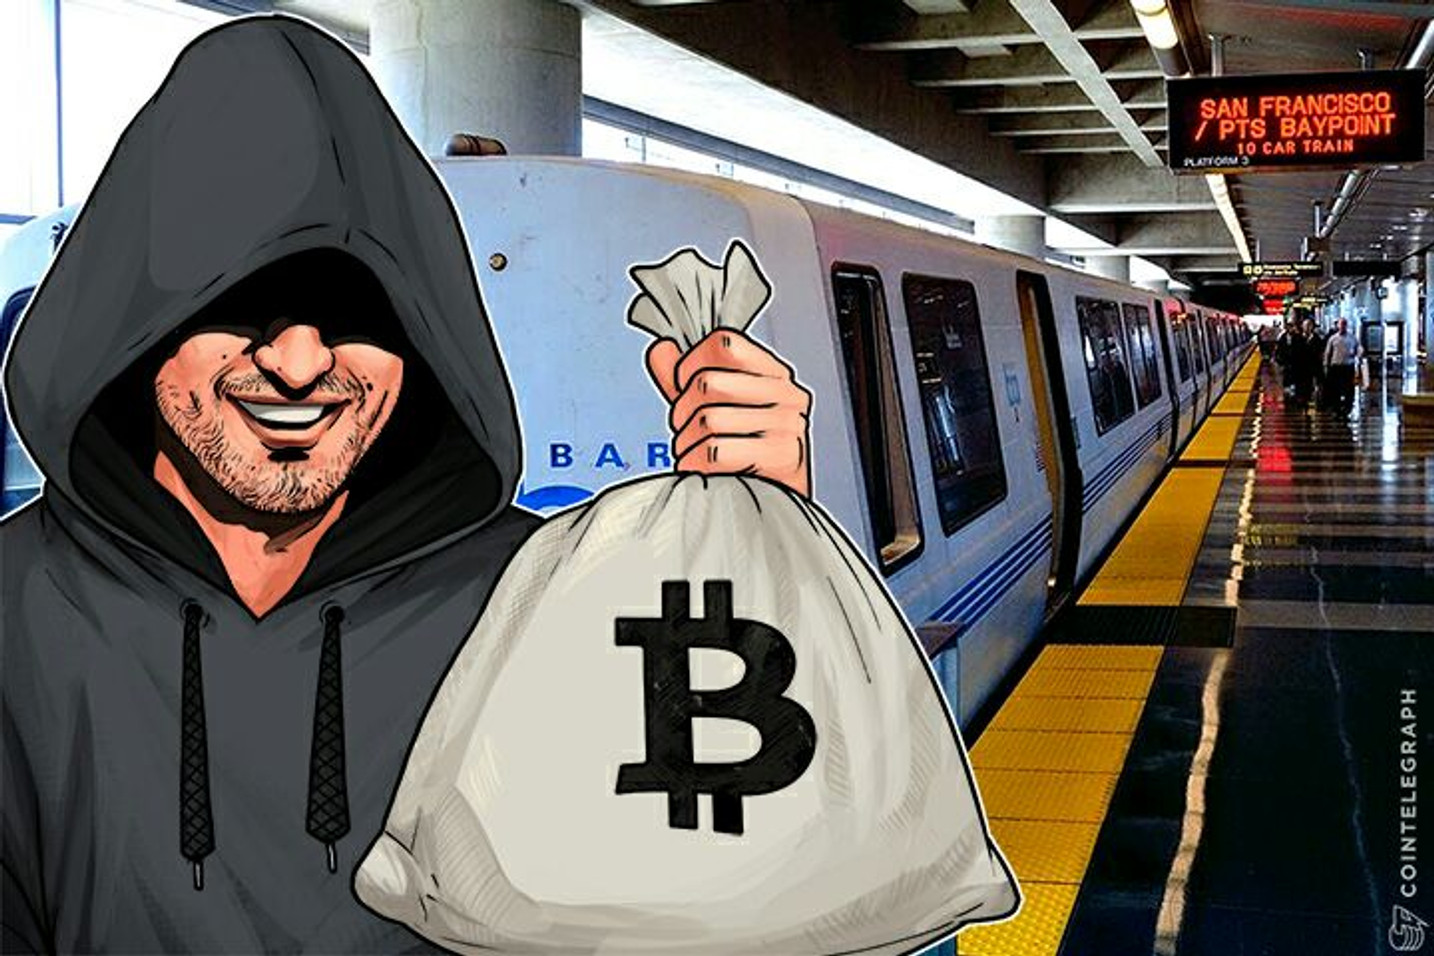 San Francisco Subway Is Free To Use After Ransomware Attack, Hackers Sought Bitcoins